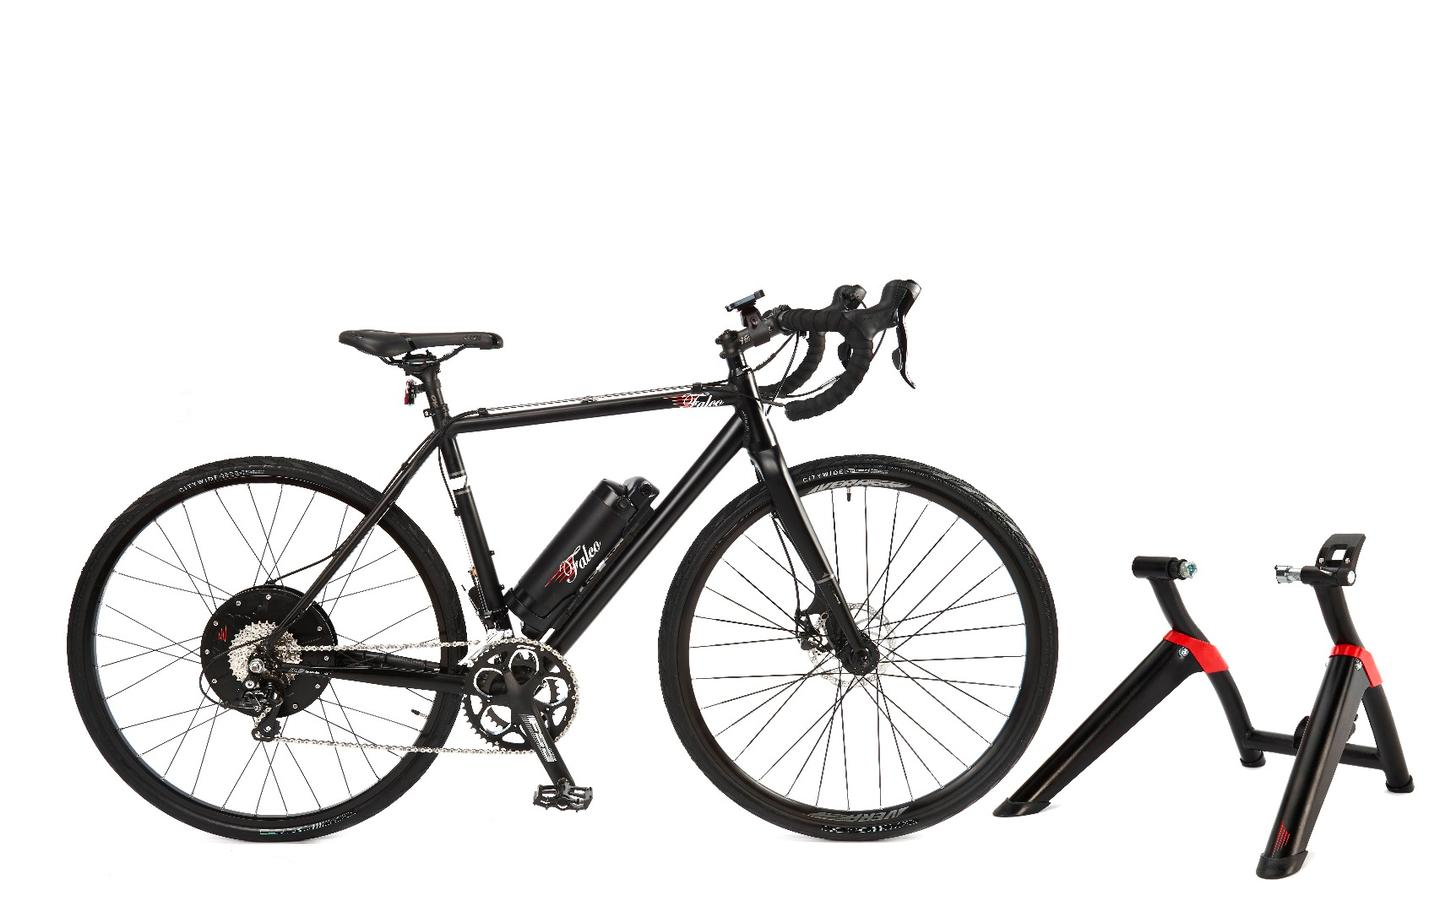 The Falco eDrive combines an electrifiedwheel with an indoor trainer stand for a comprehensive indoor/outdoor workout